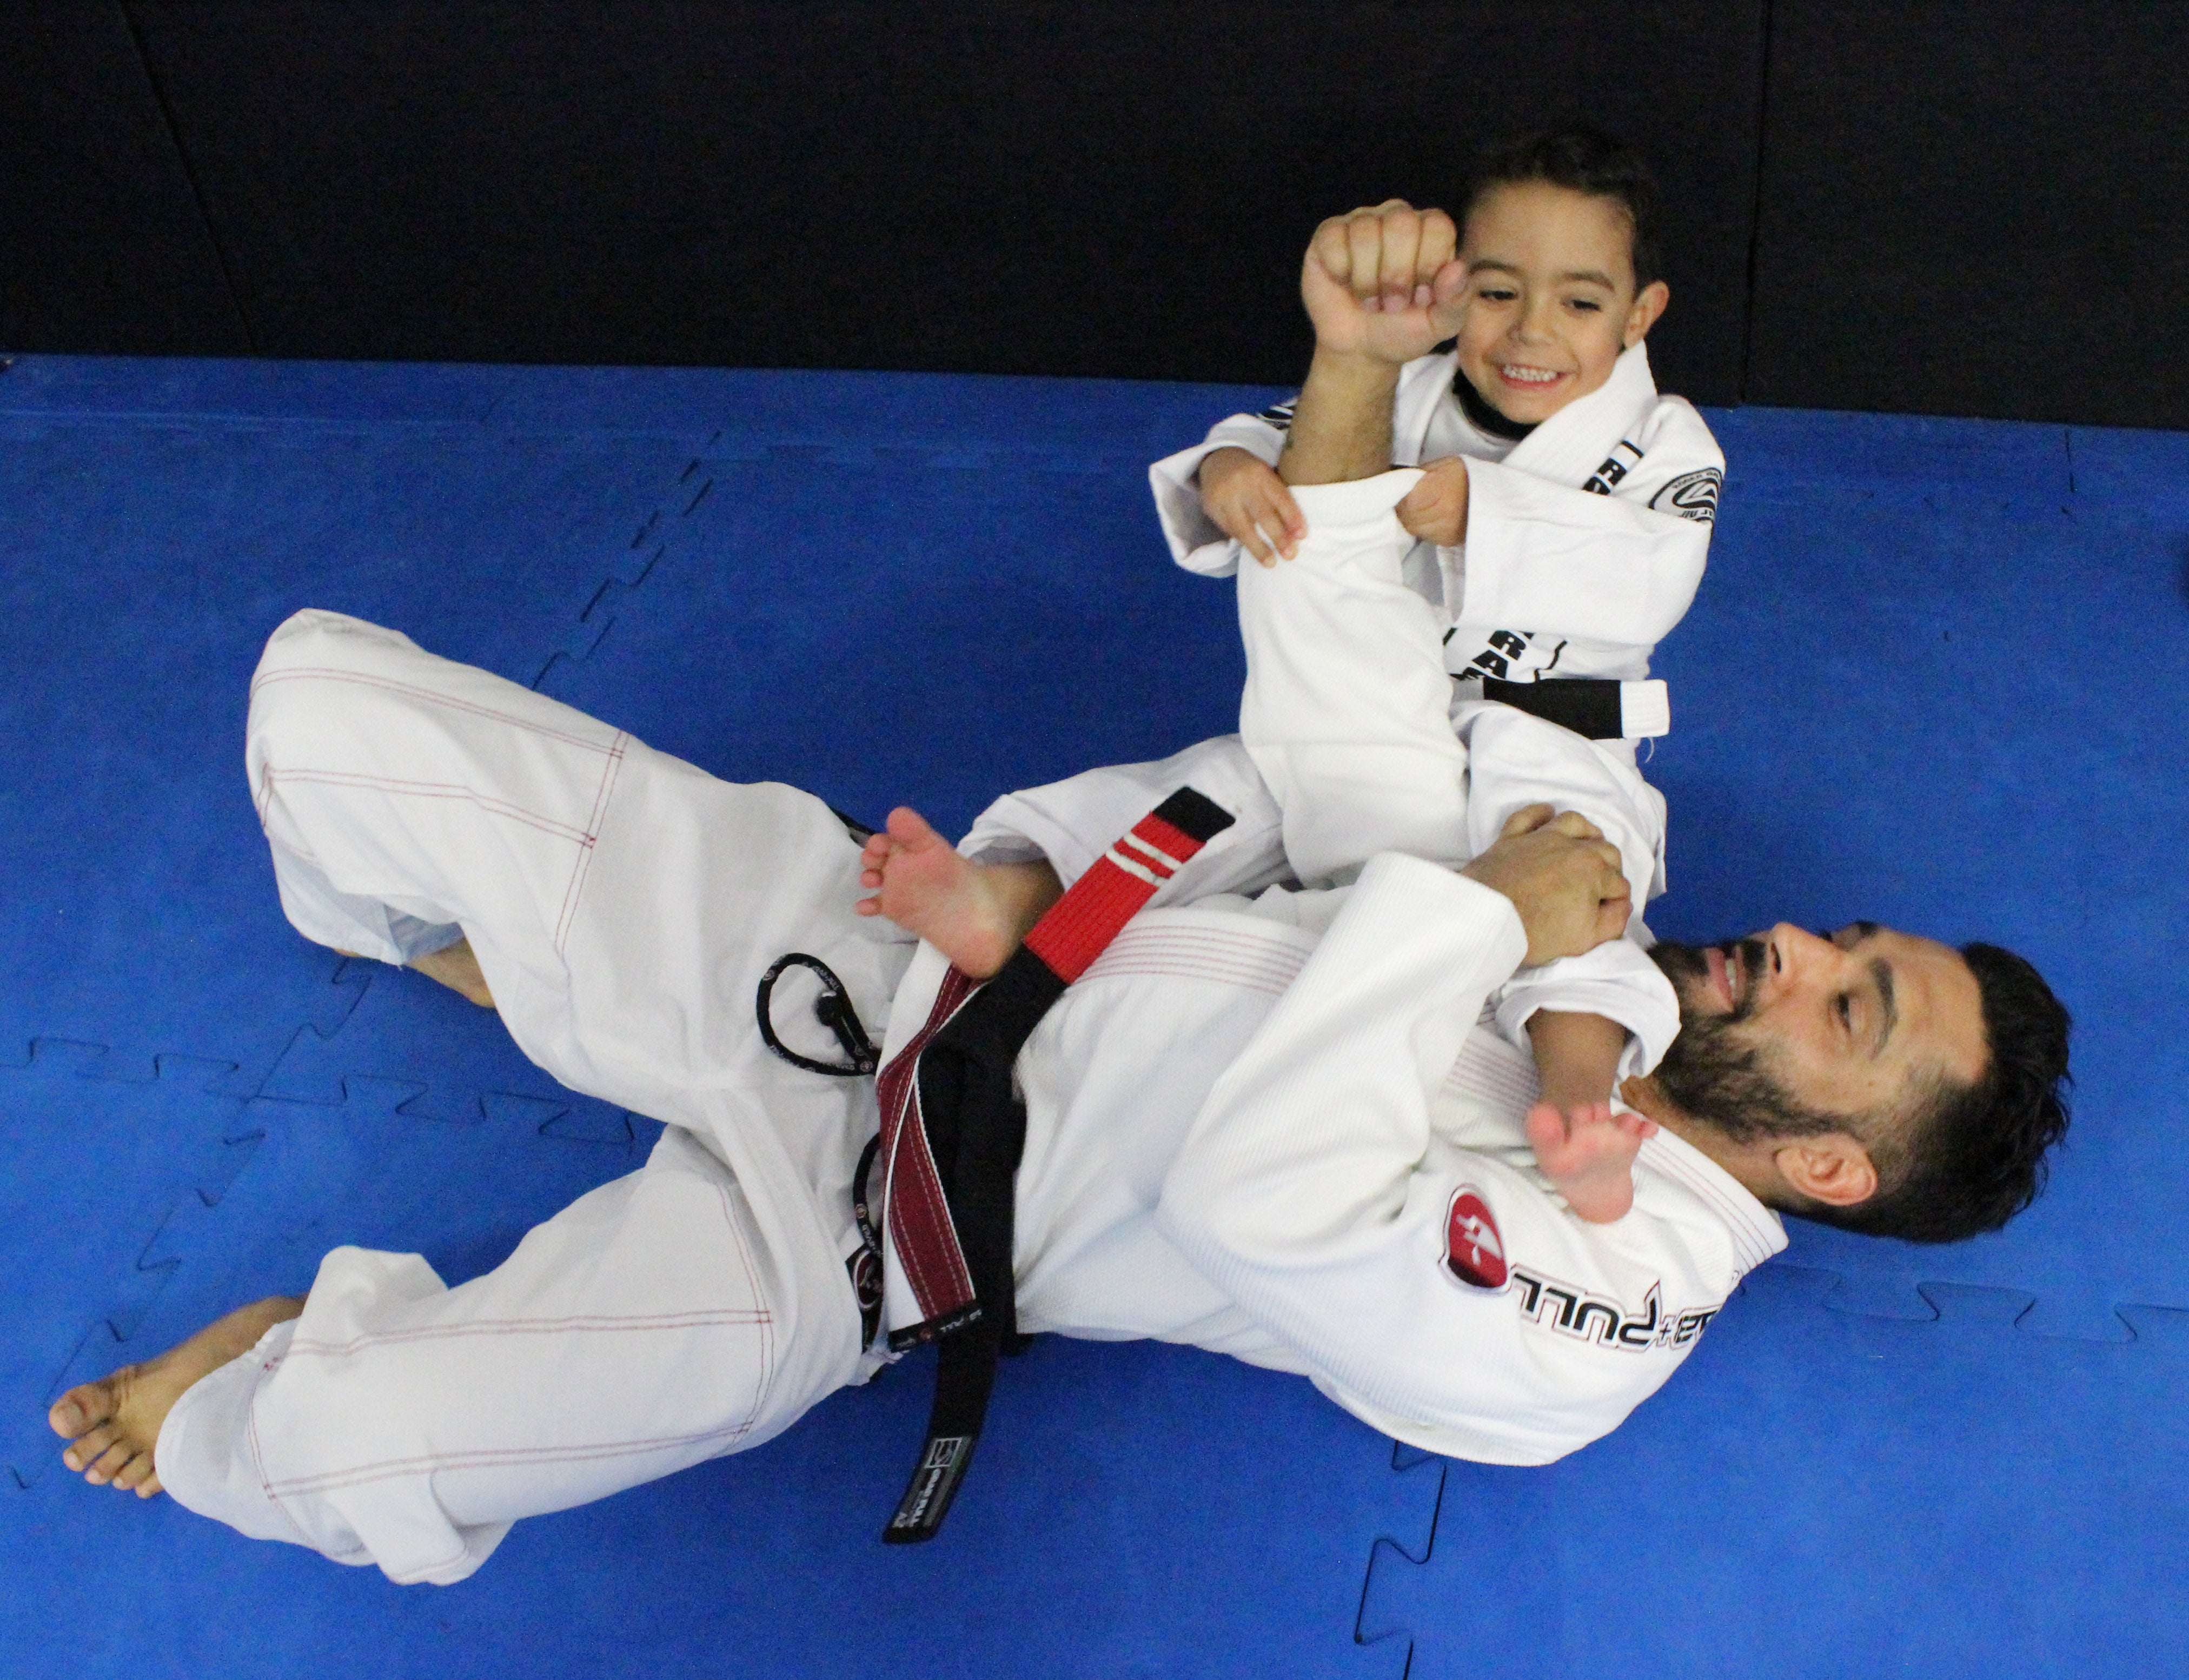 BJJ Instructor with Child Student